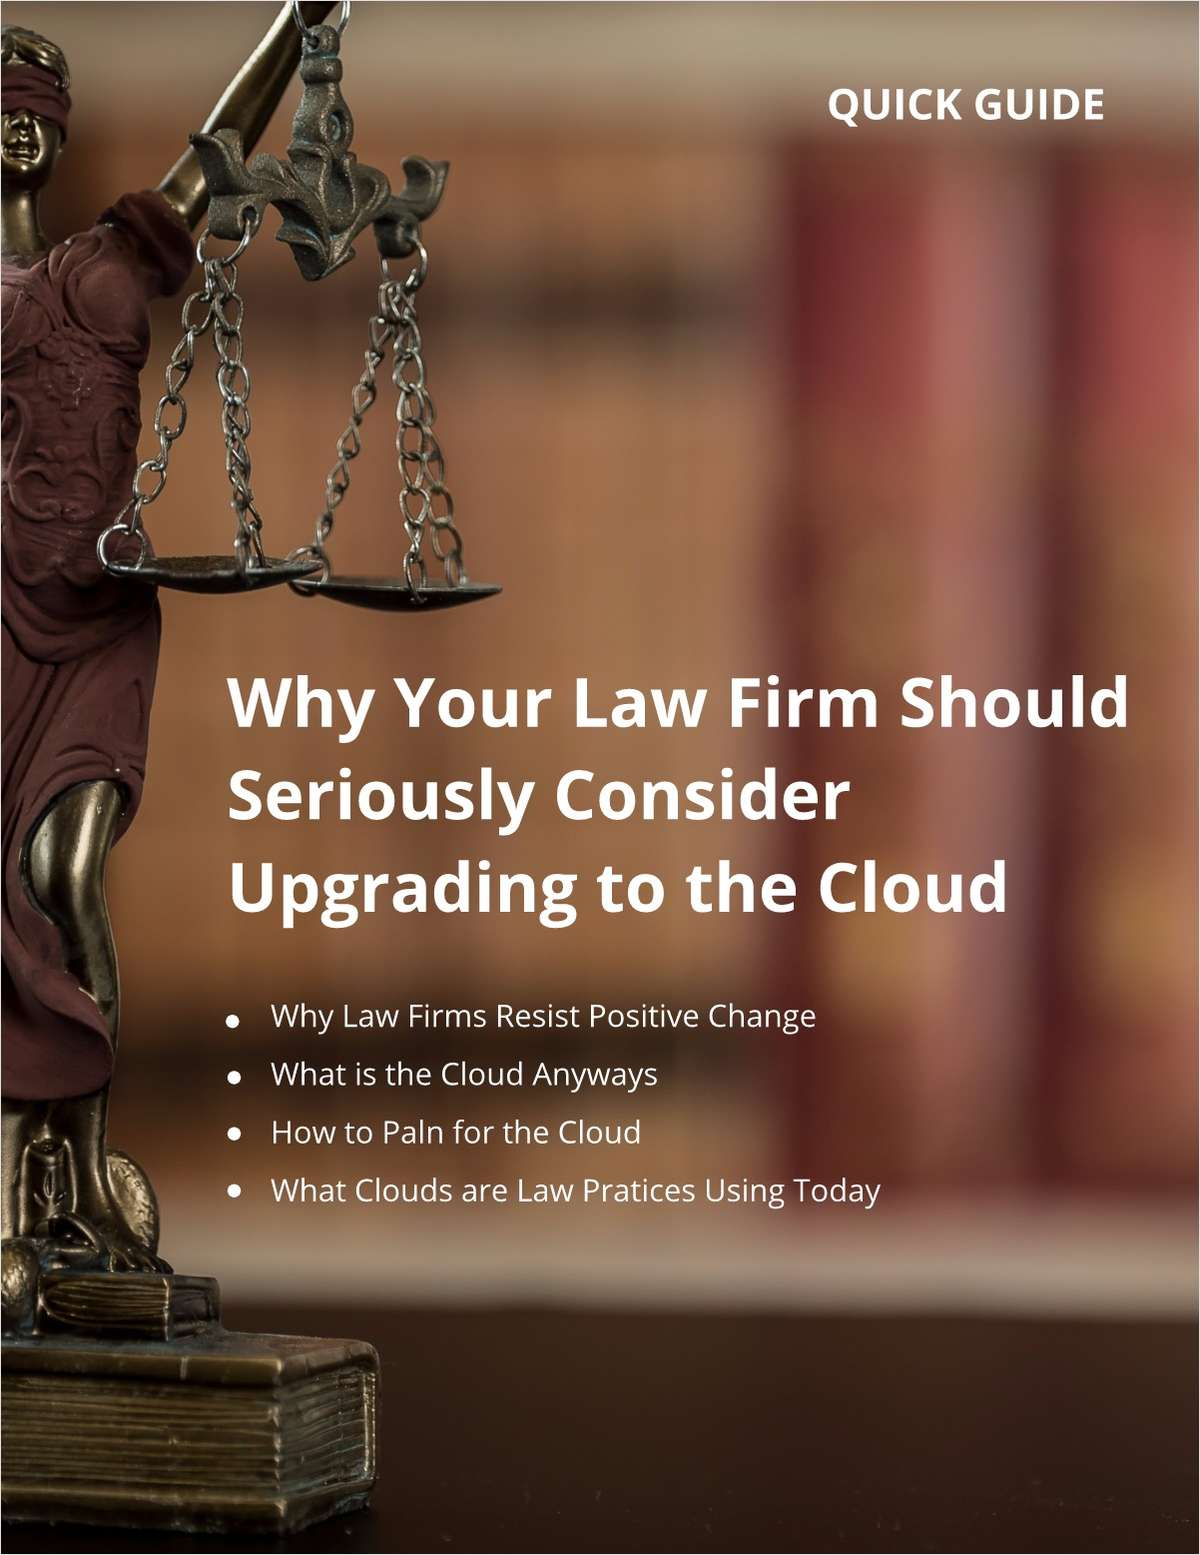 Why Your Law Firm Should Seriously Consider Upgrading to the Cloud